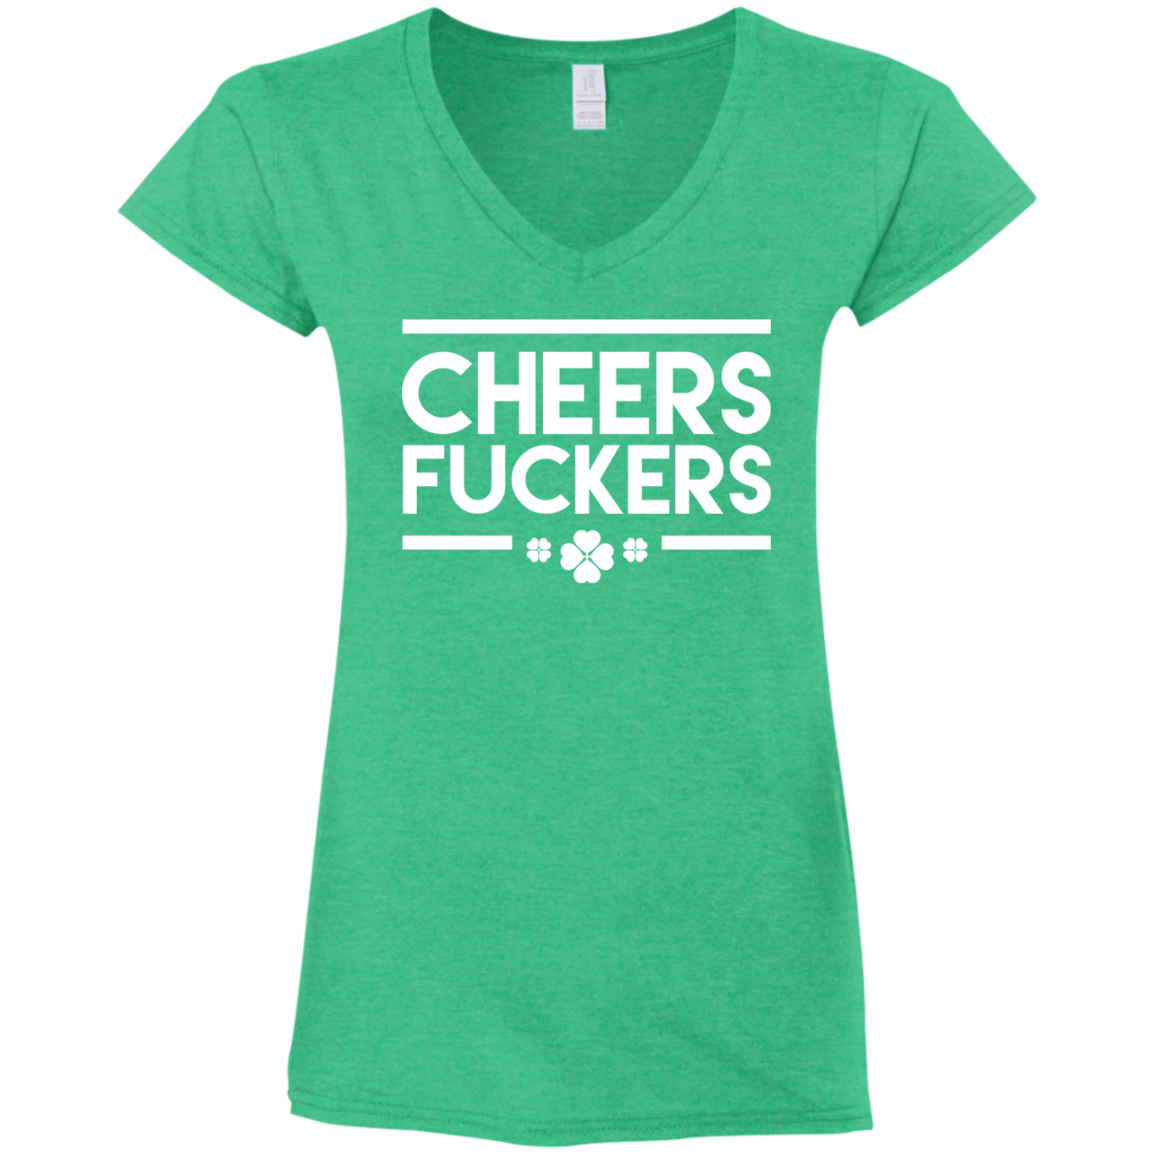 6c7c078c4bad CHEERS DUCKERS V-Neck Fitted Softstyle T-Shirt / Heather Irish Green / 3XL